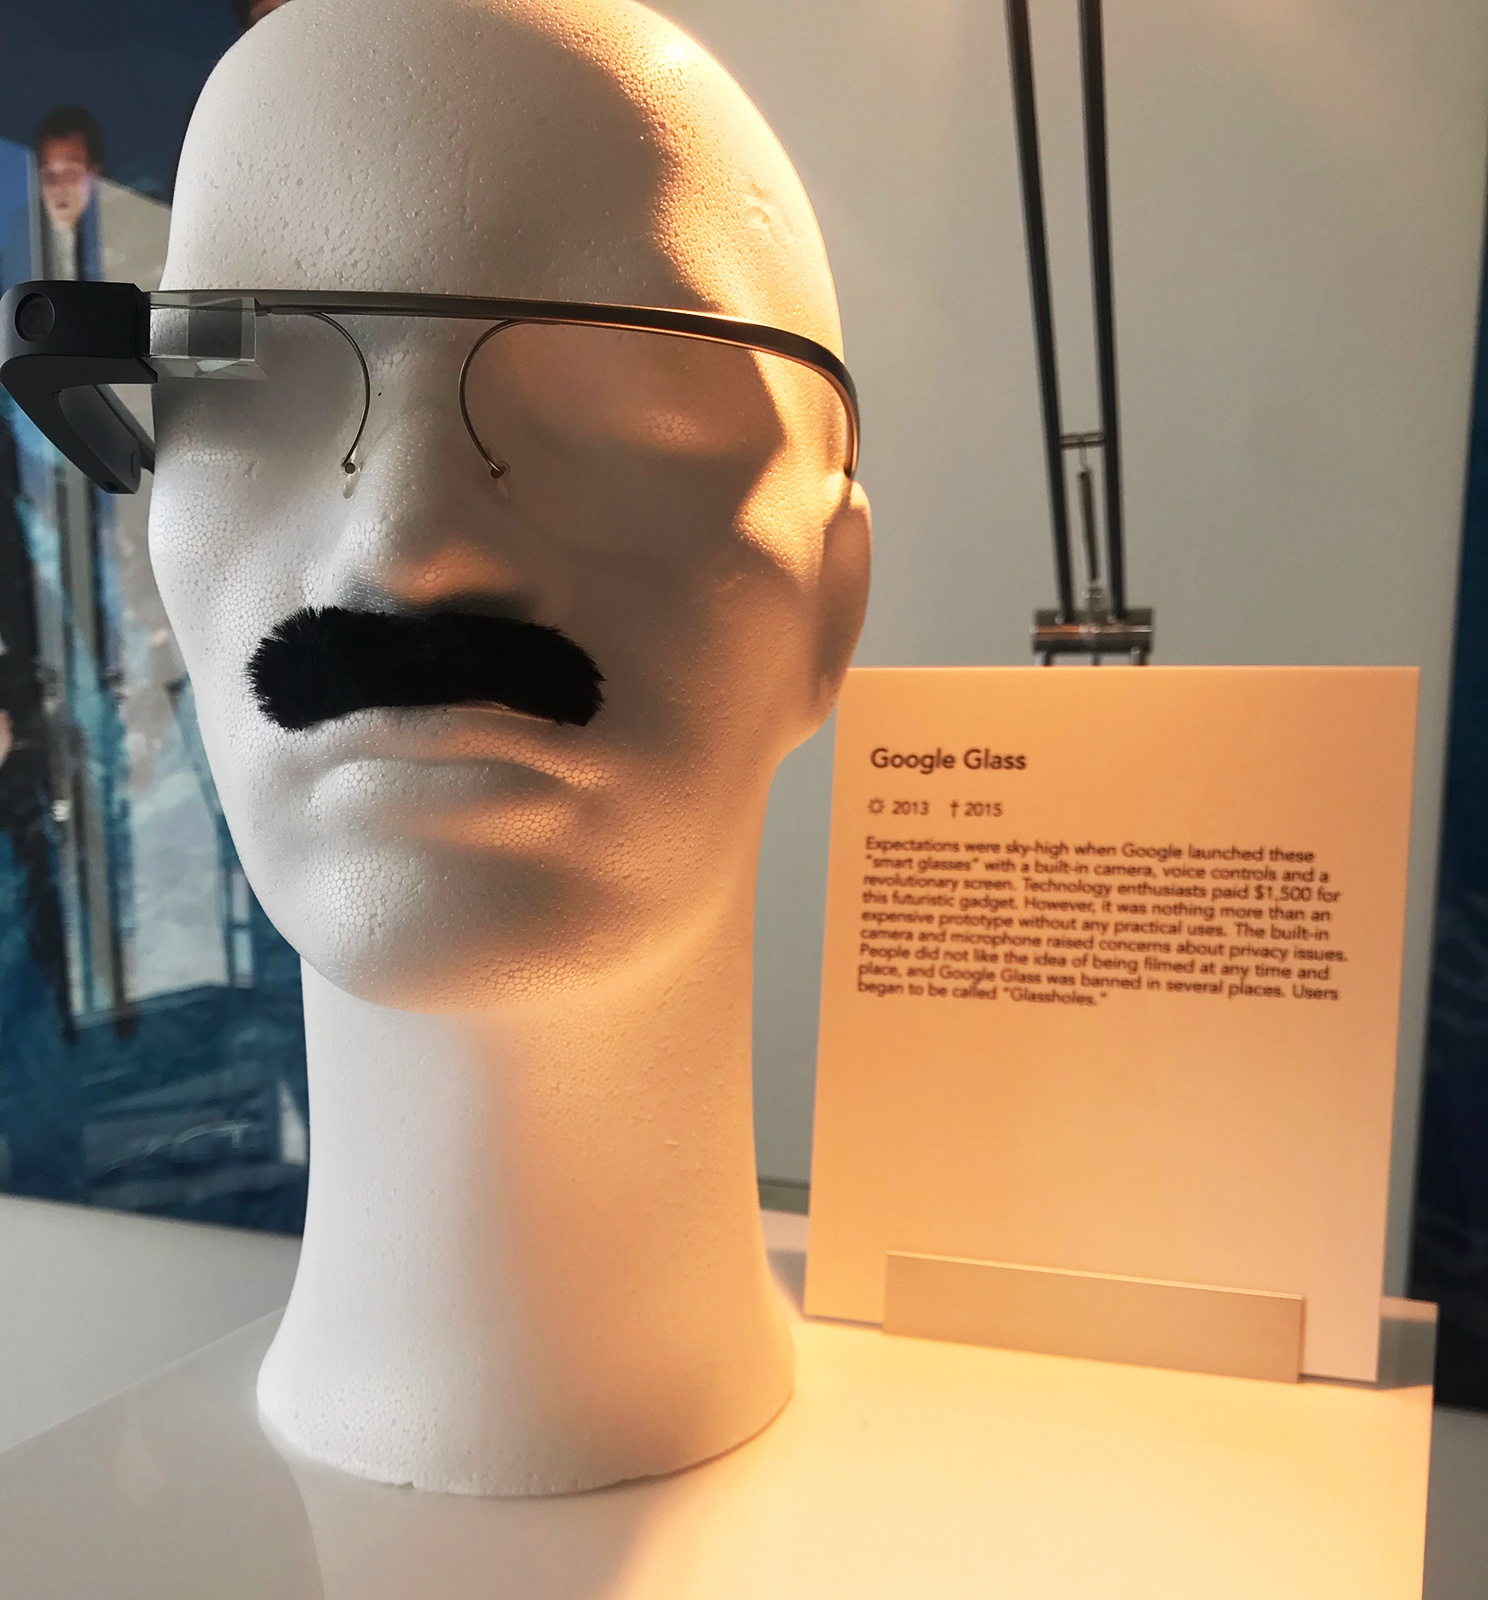 Poll: which is the bigger fail, Google Glass or the mustache?